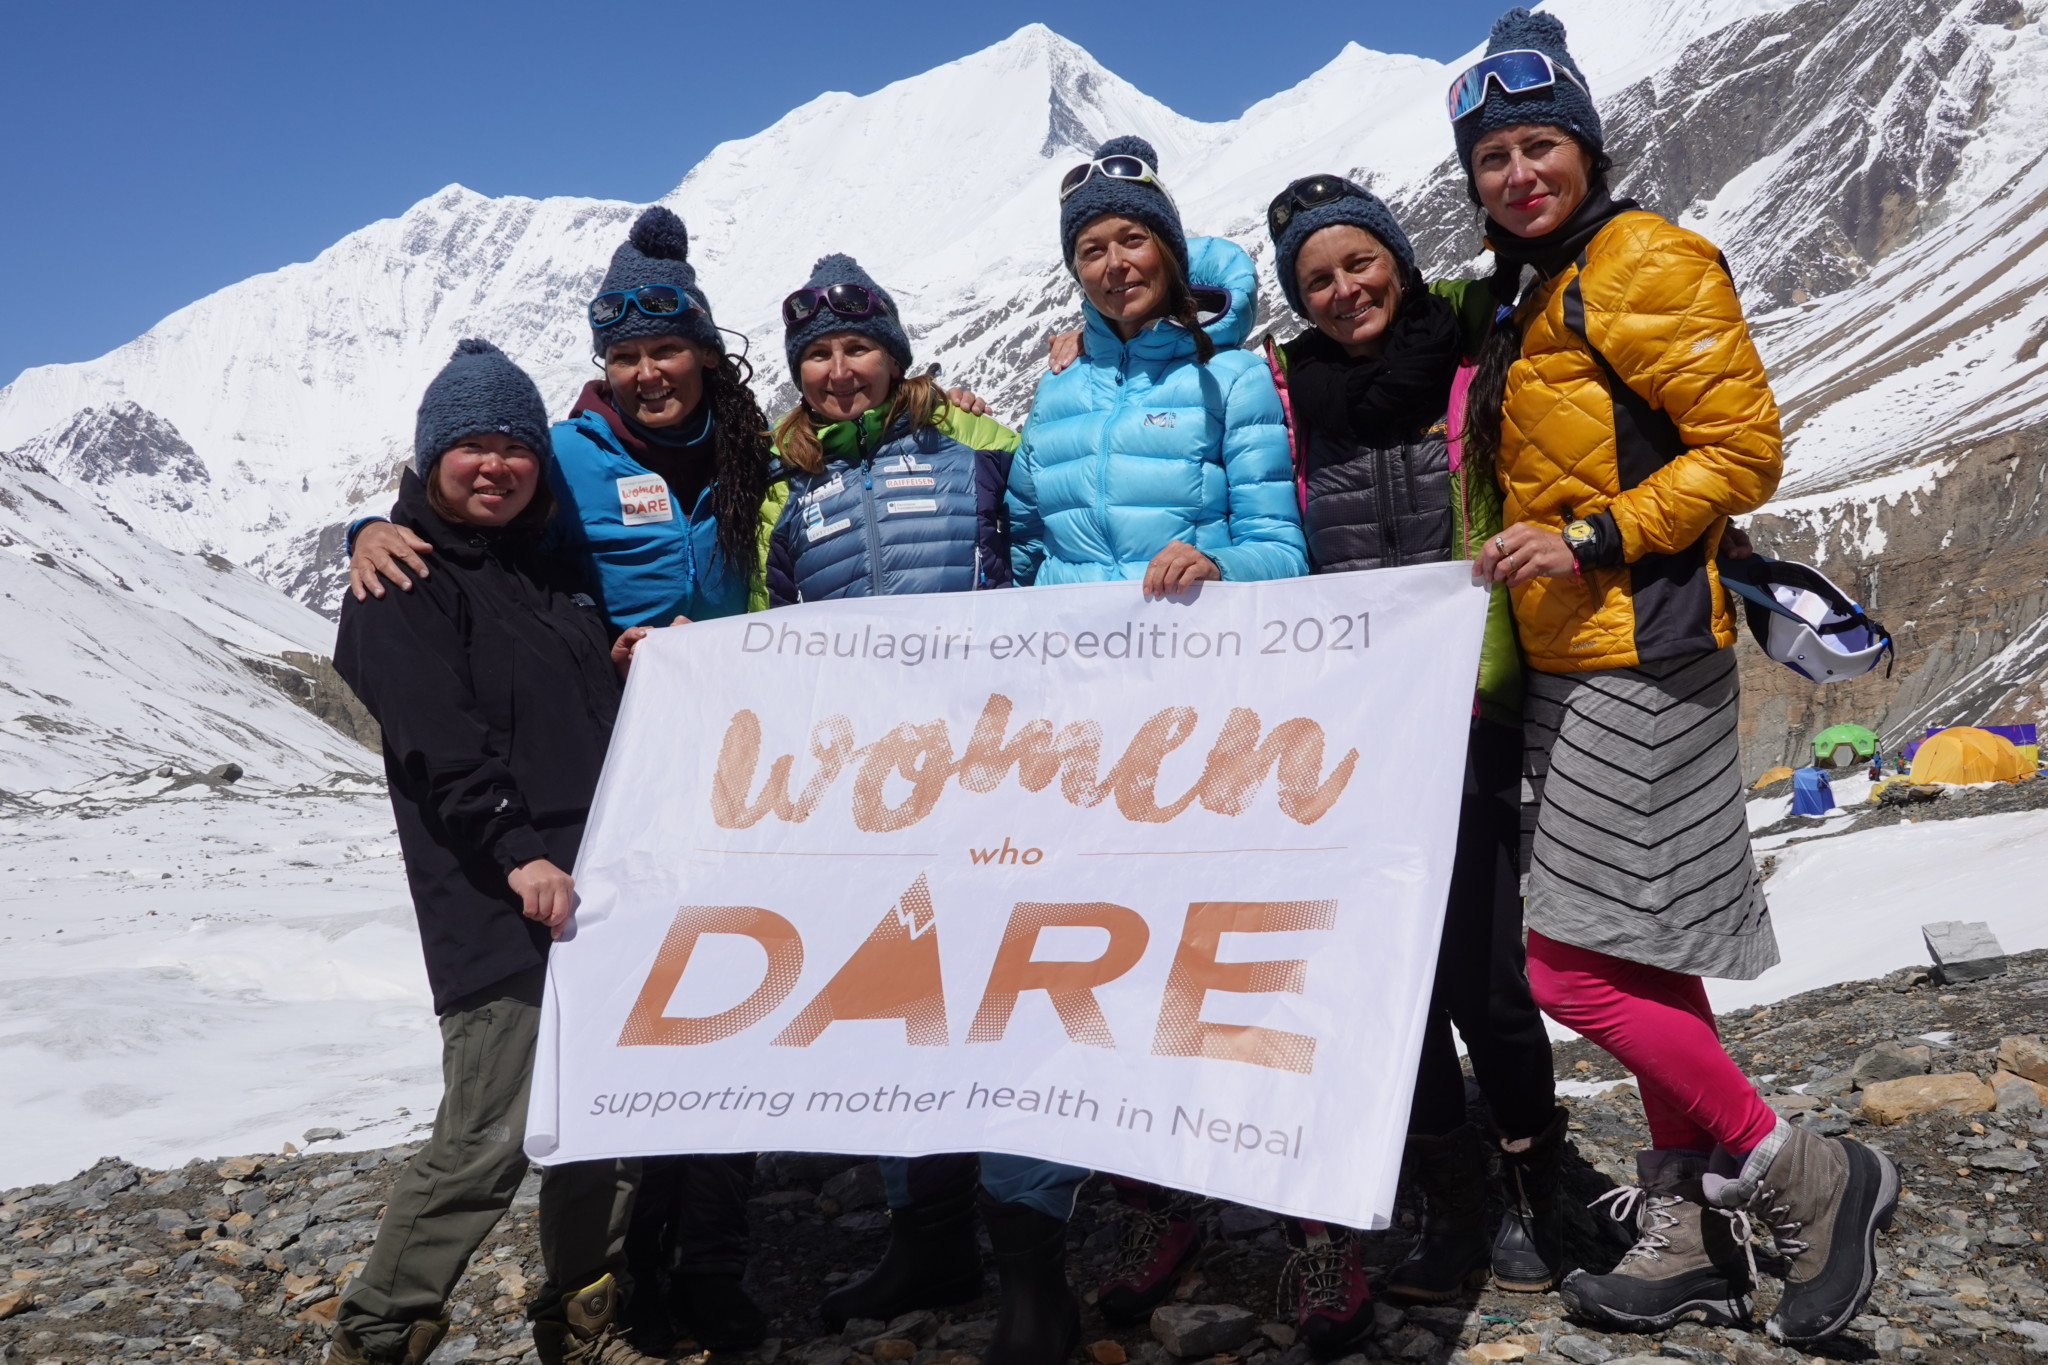 WOMEN WHO DARE, supporting mother health in Nepal